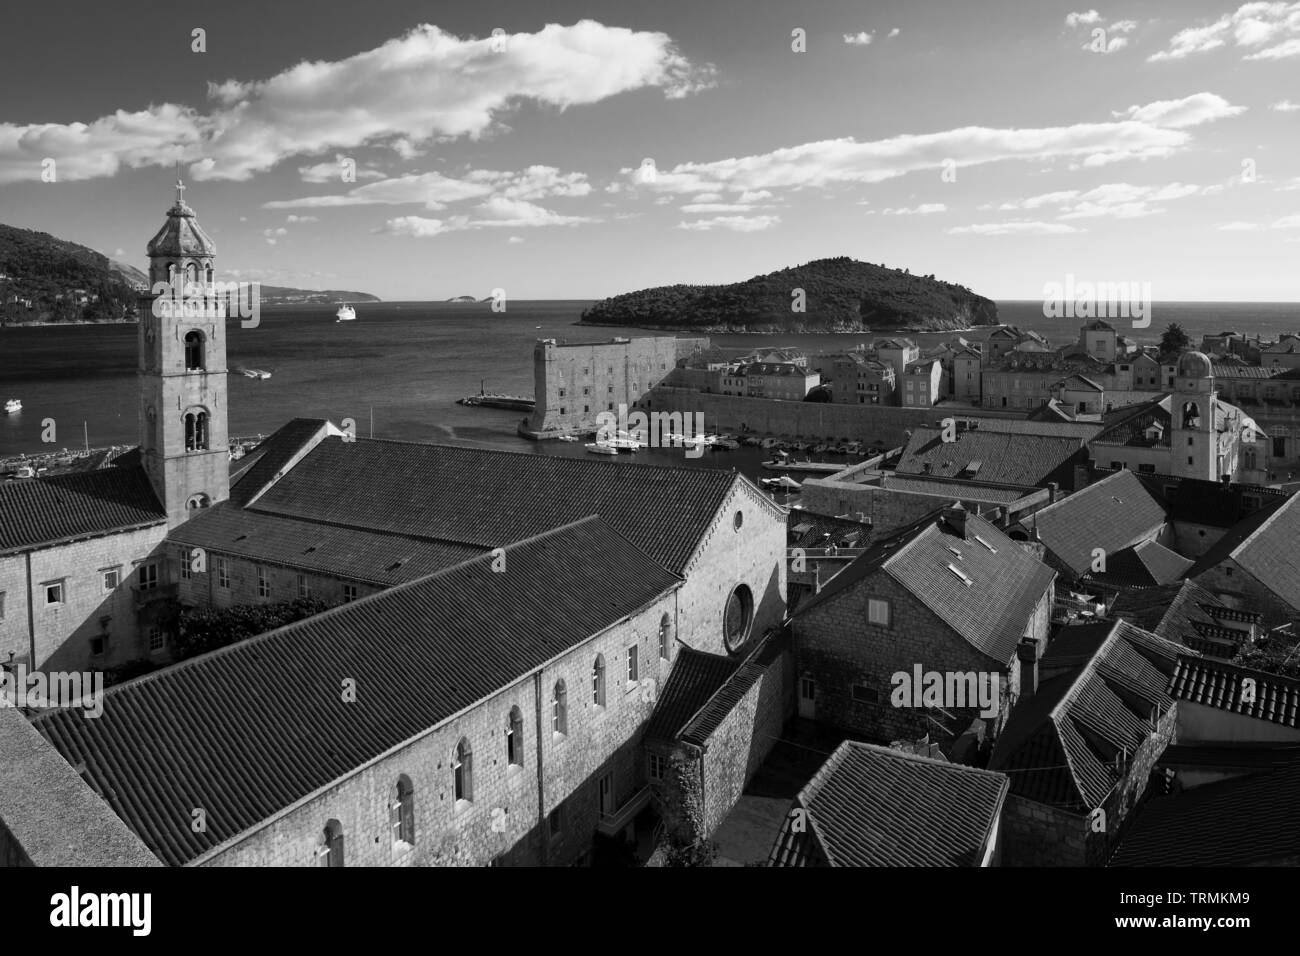 View from the city walls, over the old town of Dubrovnik, Croatia: Dominican monastery, old harbour, the island of Lokrum beyond.  Black and white - Stock Image